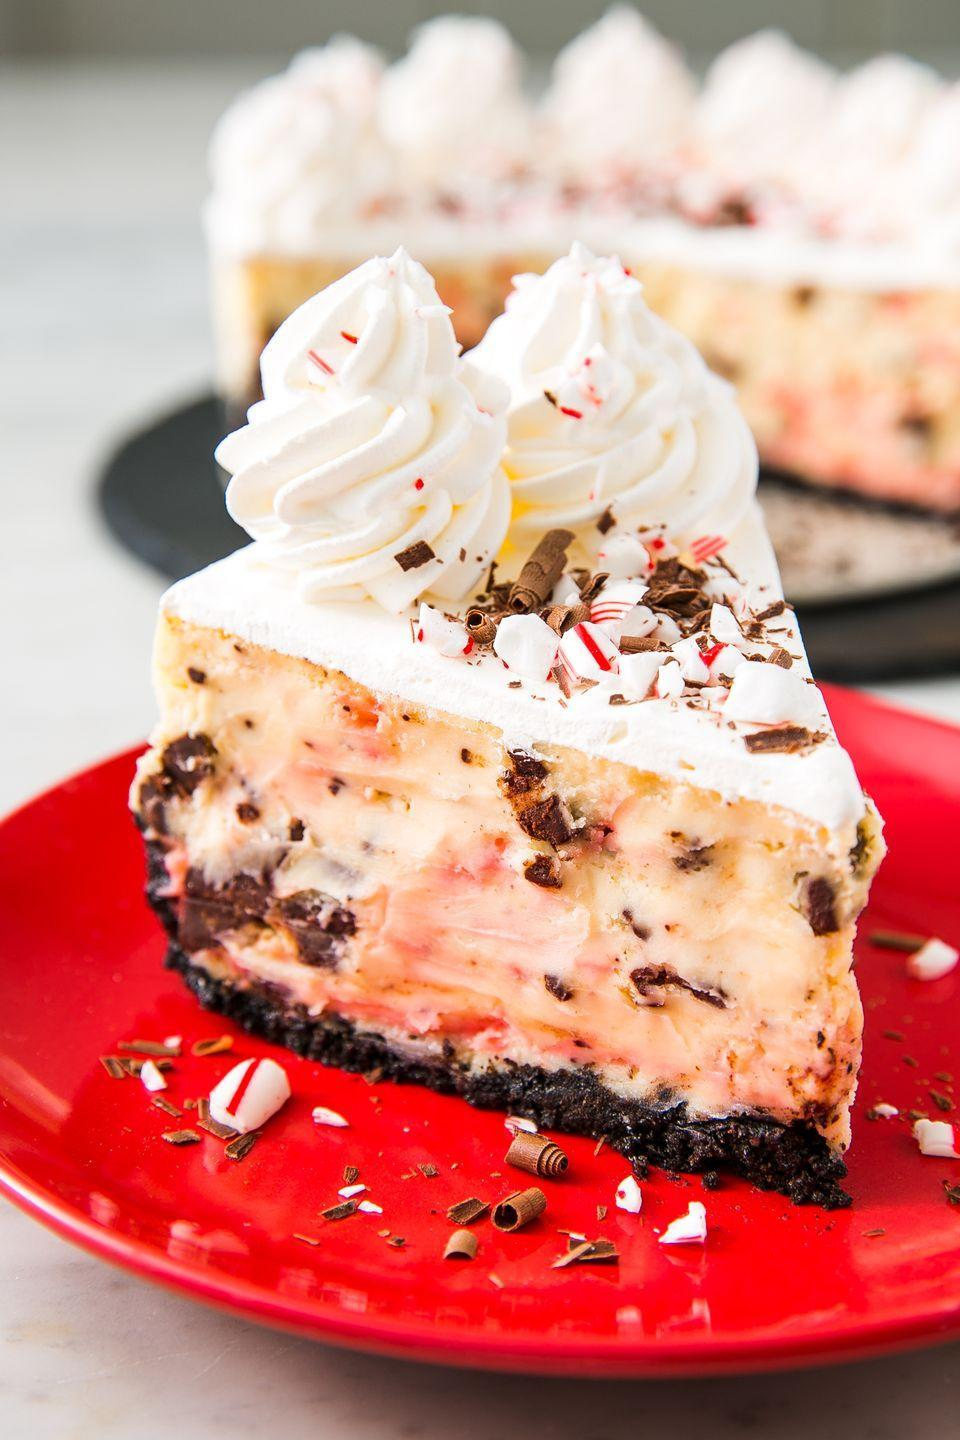 """<p>A minty, chocolate-y epic holiday dessert. </p><p>Get the recipe from <a href=""""https://www.delish.com/holiday-recipes/christmas/a25441818/peppermint-bark-cheesecake-recipe/"""" rel=""""nofollow noopener"""" target=""""_blank"""" data-ylk=""""slk:Delish"""" class=""""link rapid-noclick-resp"""">Delish</a>. </p>"""